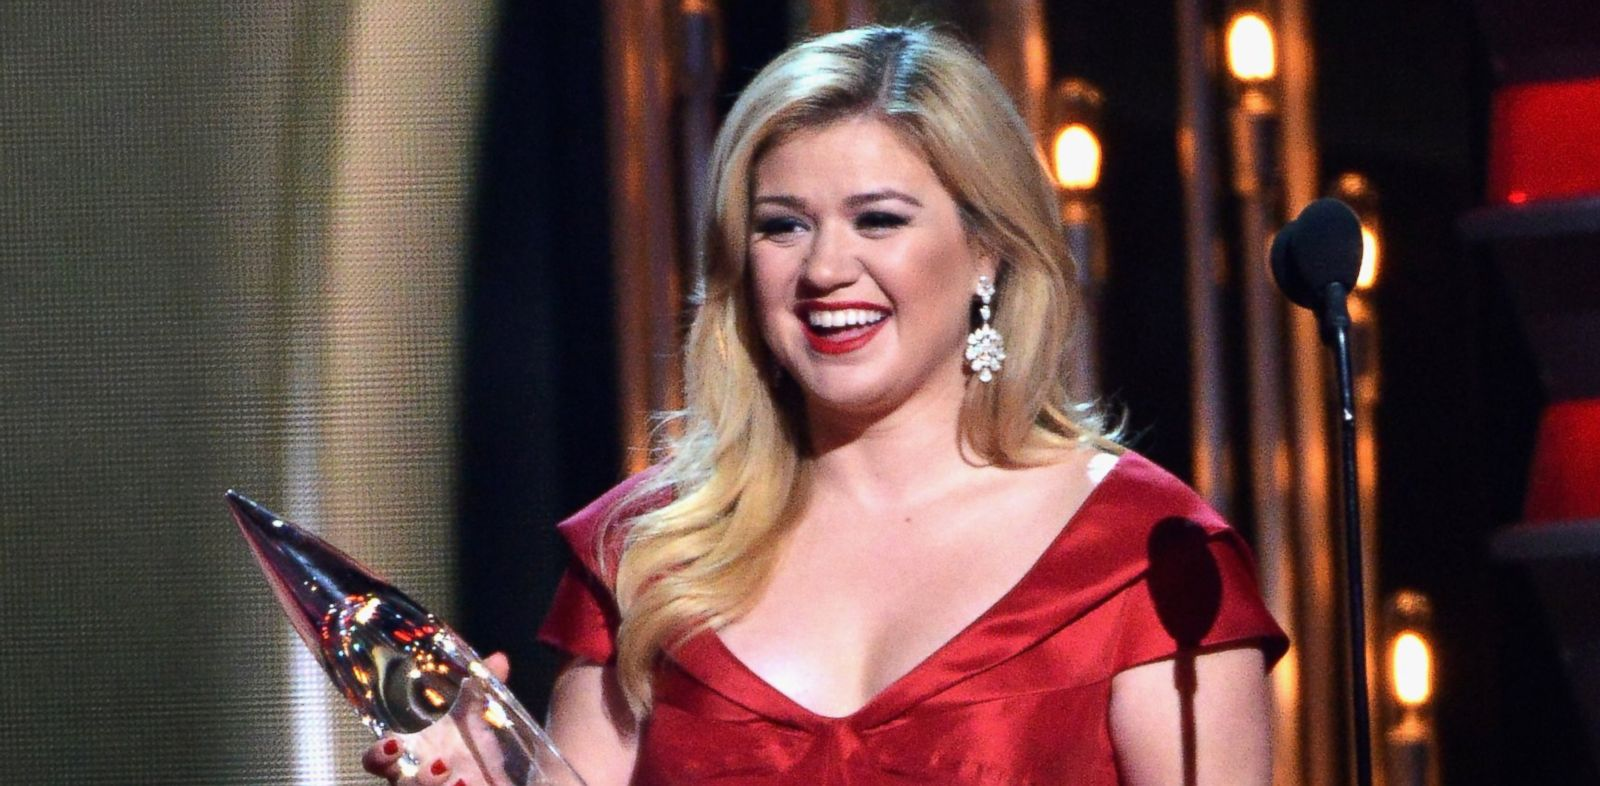 PHOTO: In this file photo, Kelly Clarkson is pictured on Nov. 6, 2013 in Nashville, Tenn.